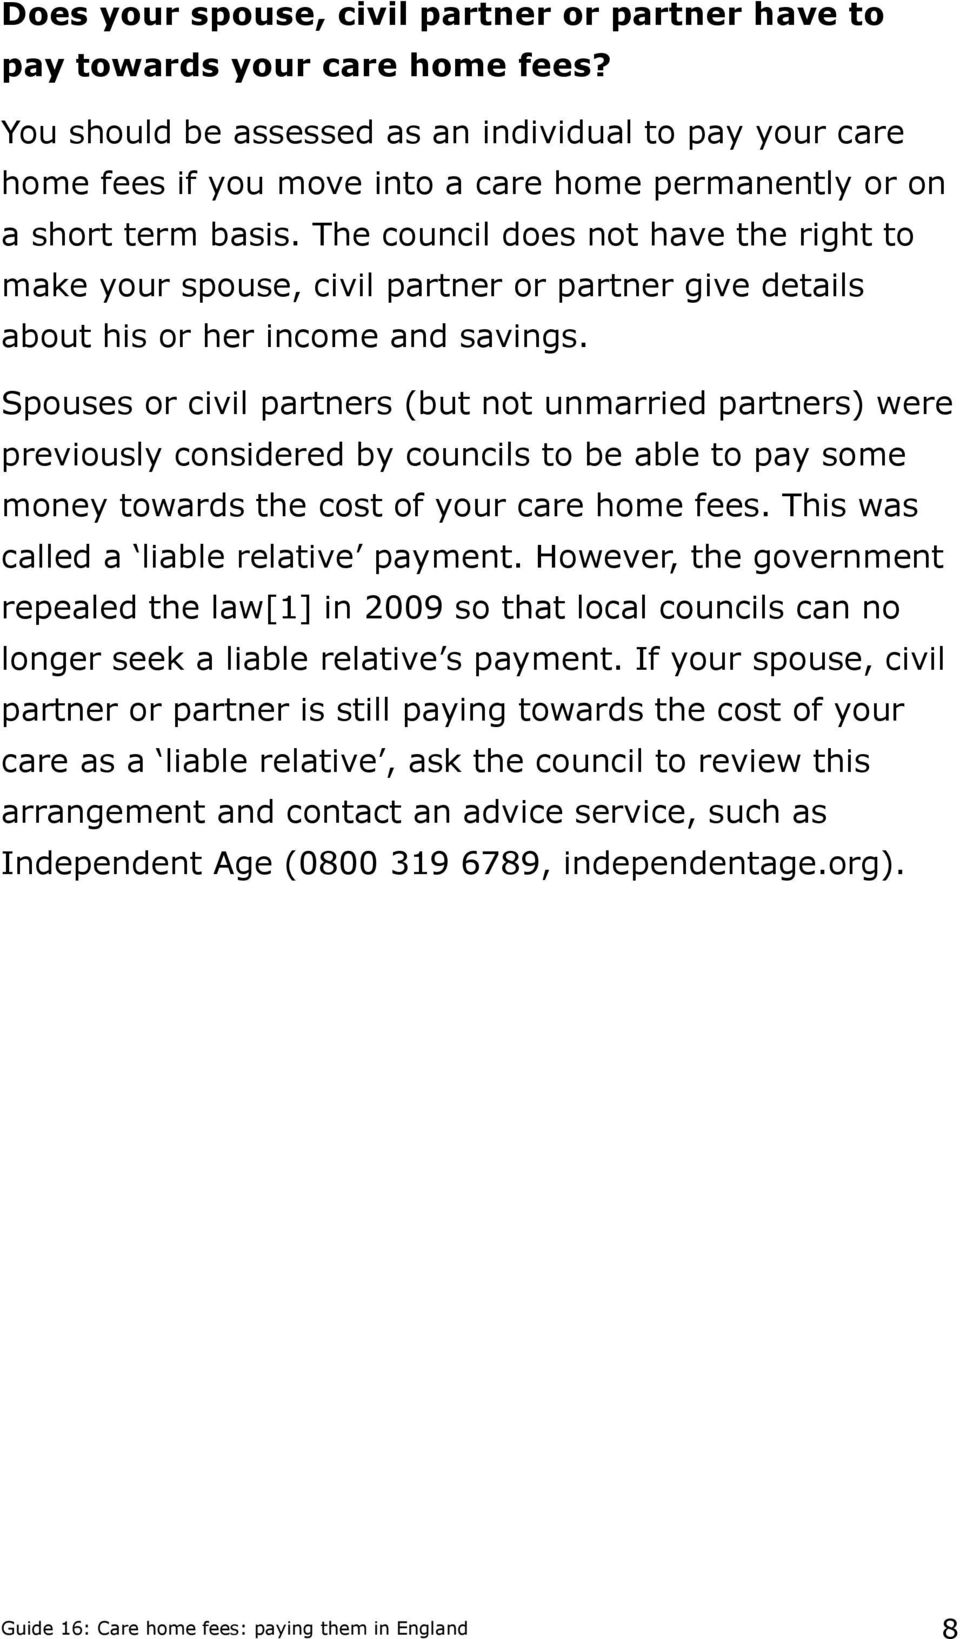 The council does not have the right to make your spouse, civil partner or partner give details about his or her income and savings.